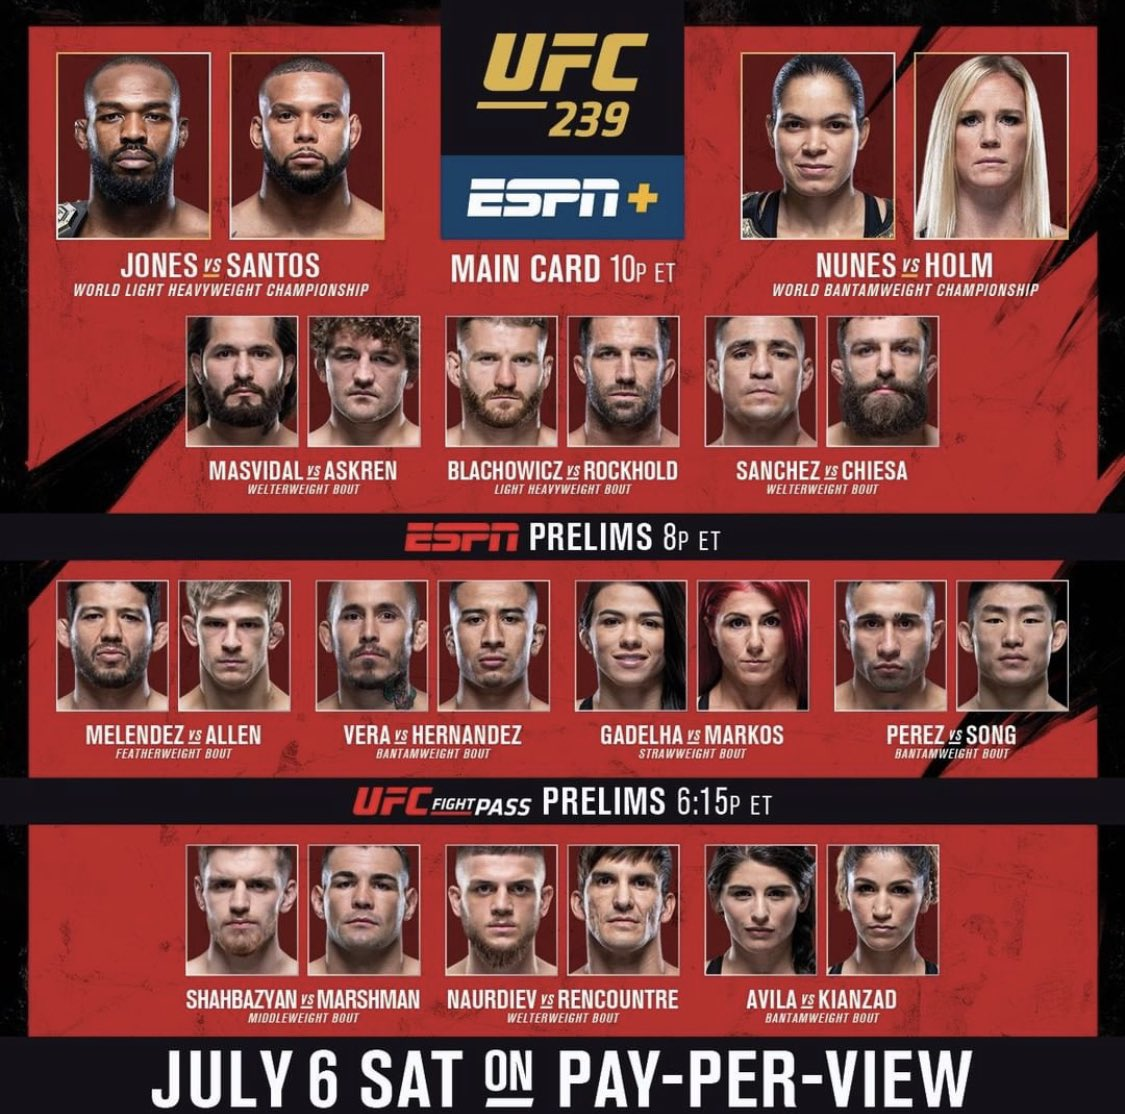 Fight day! Come watch the fights with me live!! #SaturdayNightFights http://mixer.com/FromHellPichel #Mixer #FromHellPichel #Streamer #UFC #Fights #ESPN #UFC239 #MMA